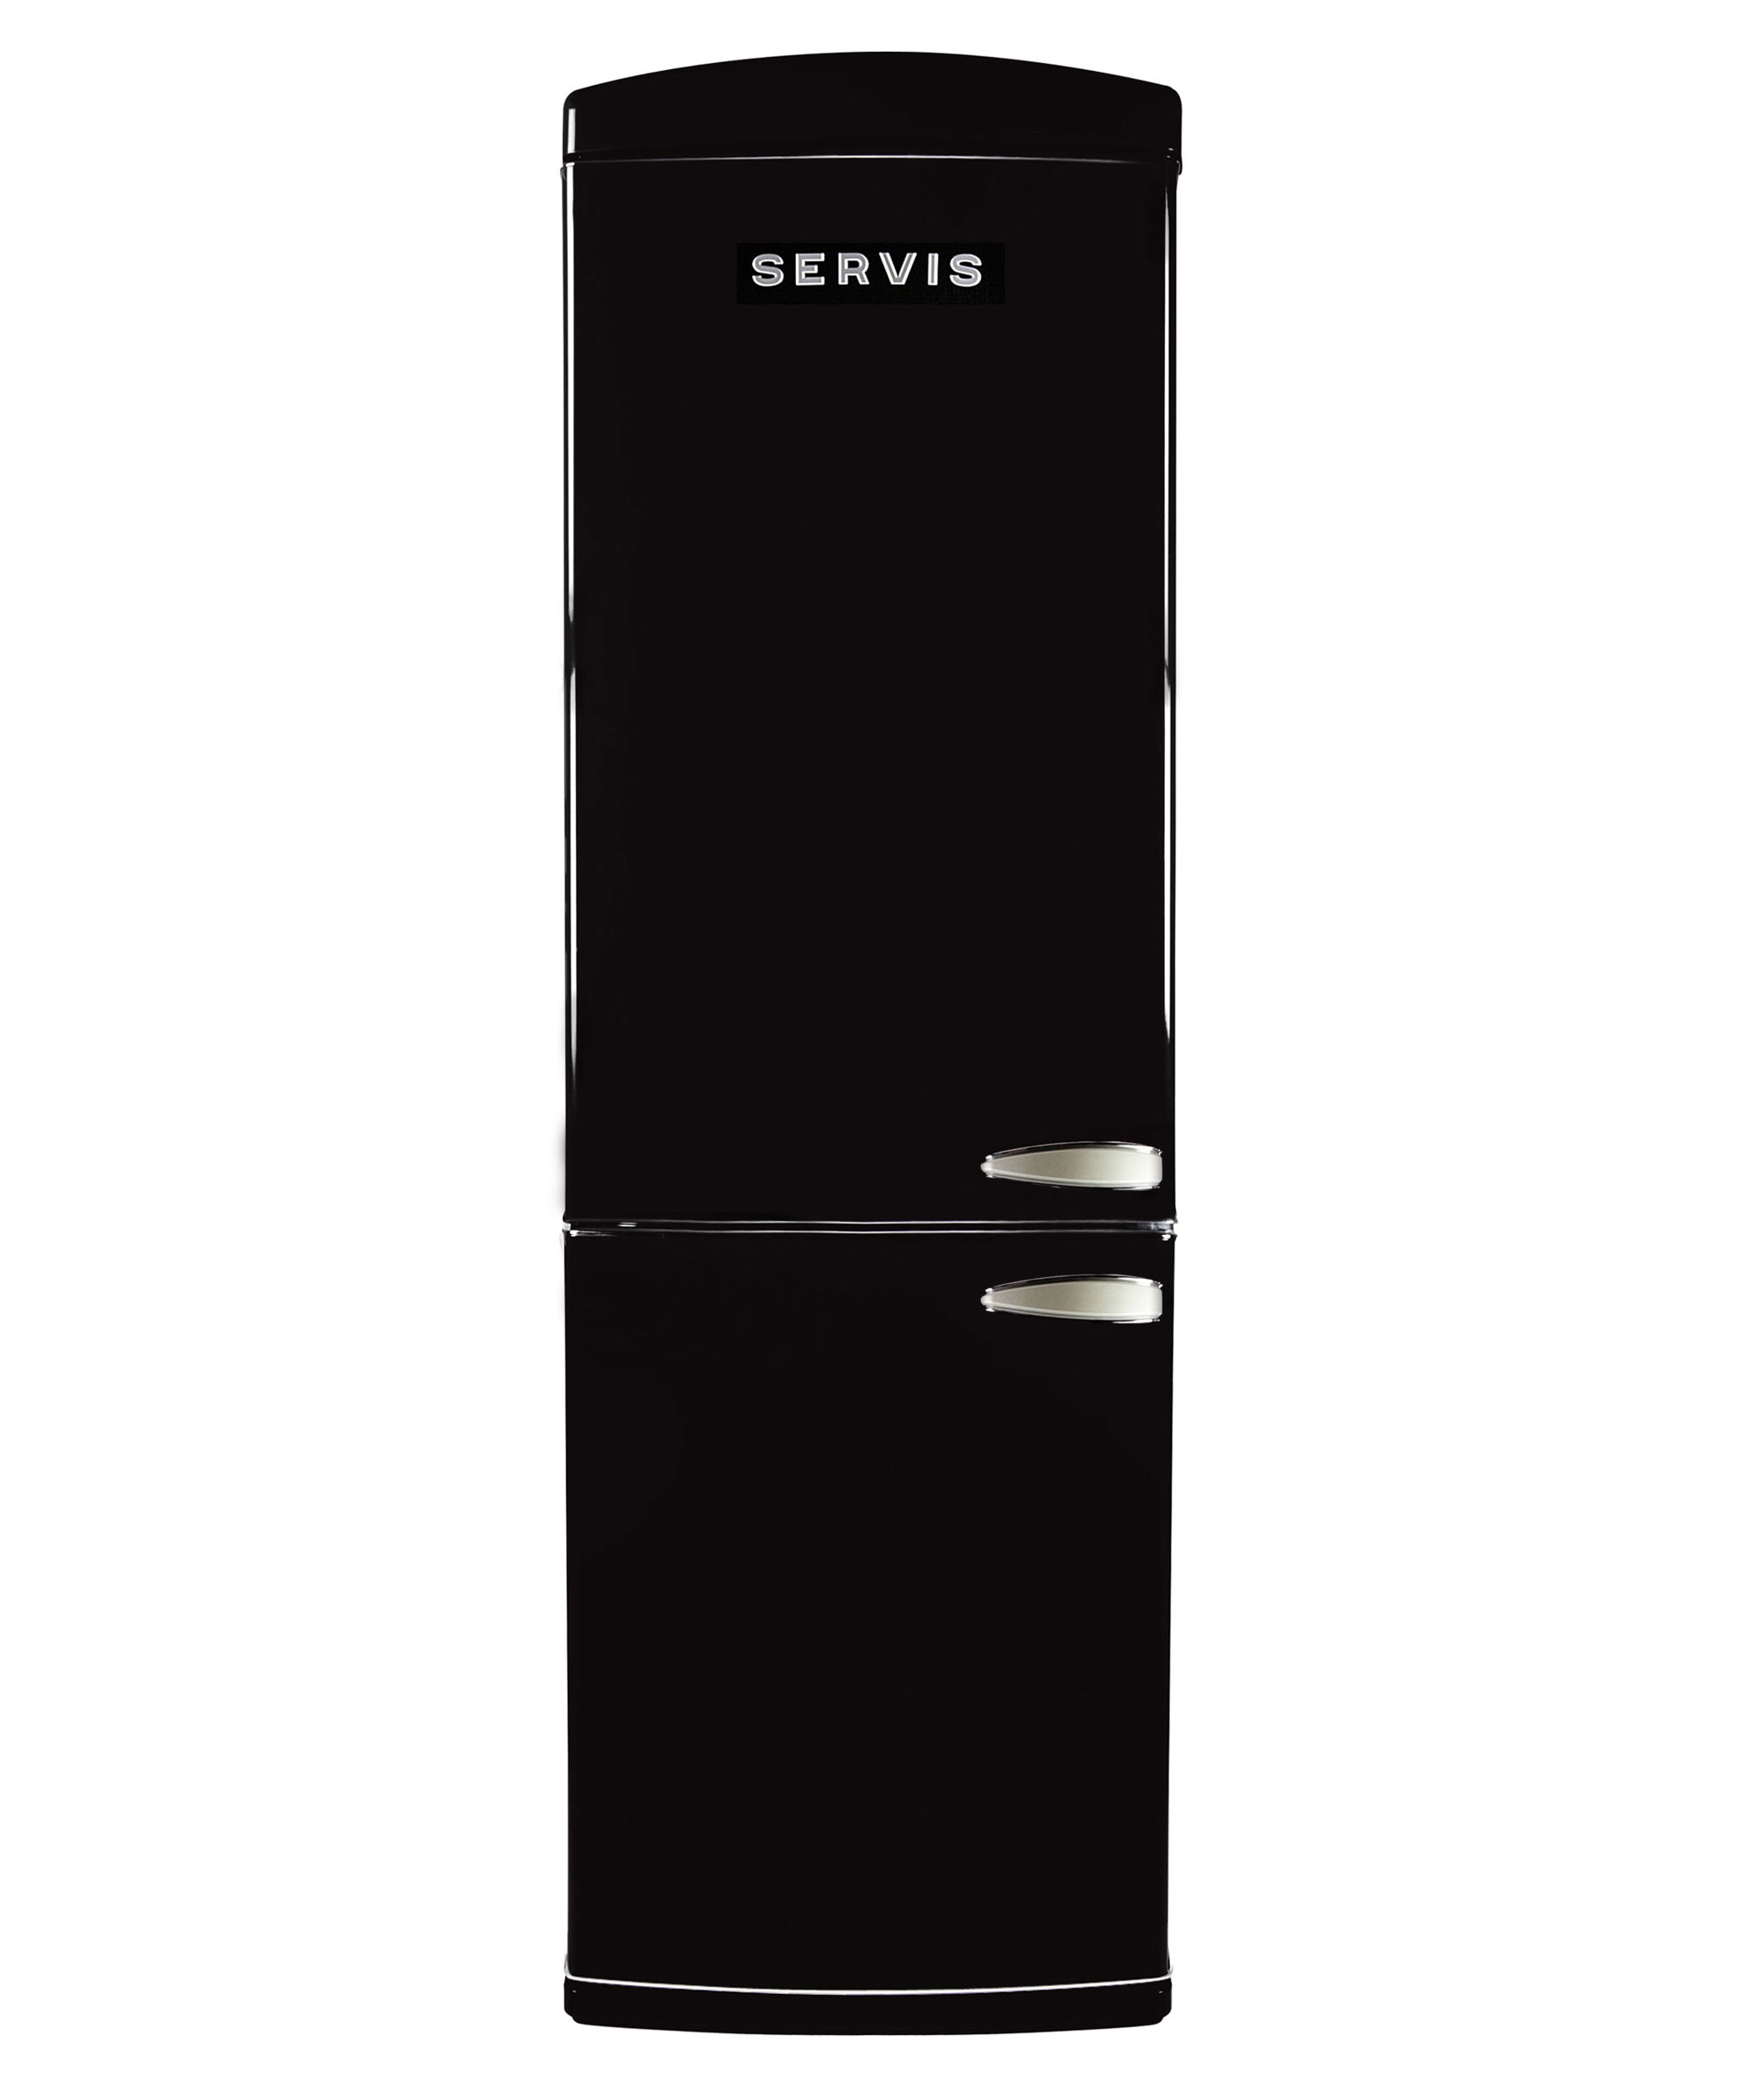 C90185RETROB-L - Jet Black - Left Hand Hinge Retro Fridge Freezer